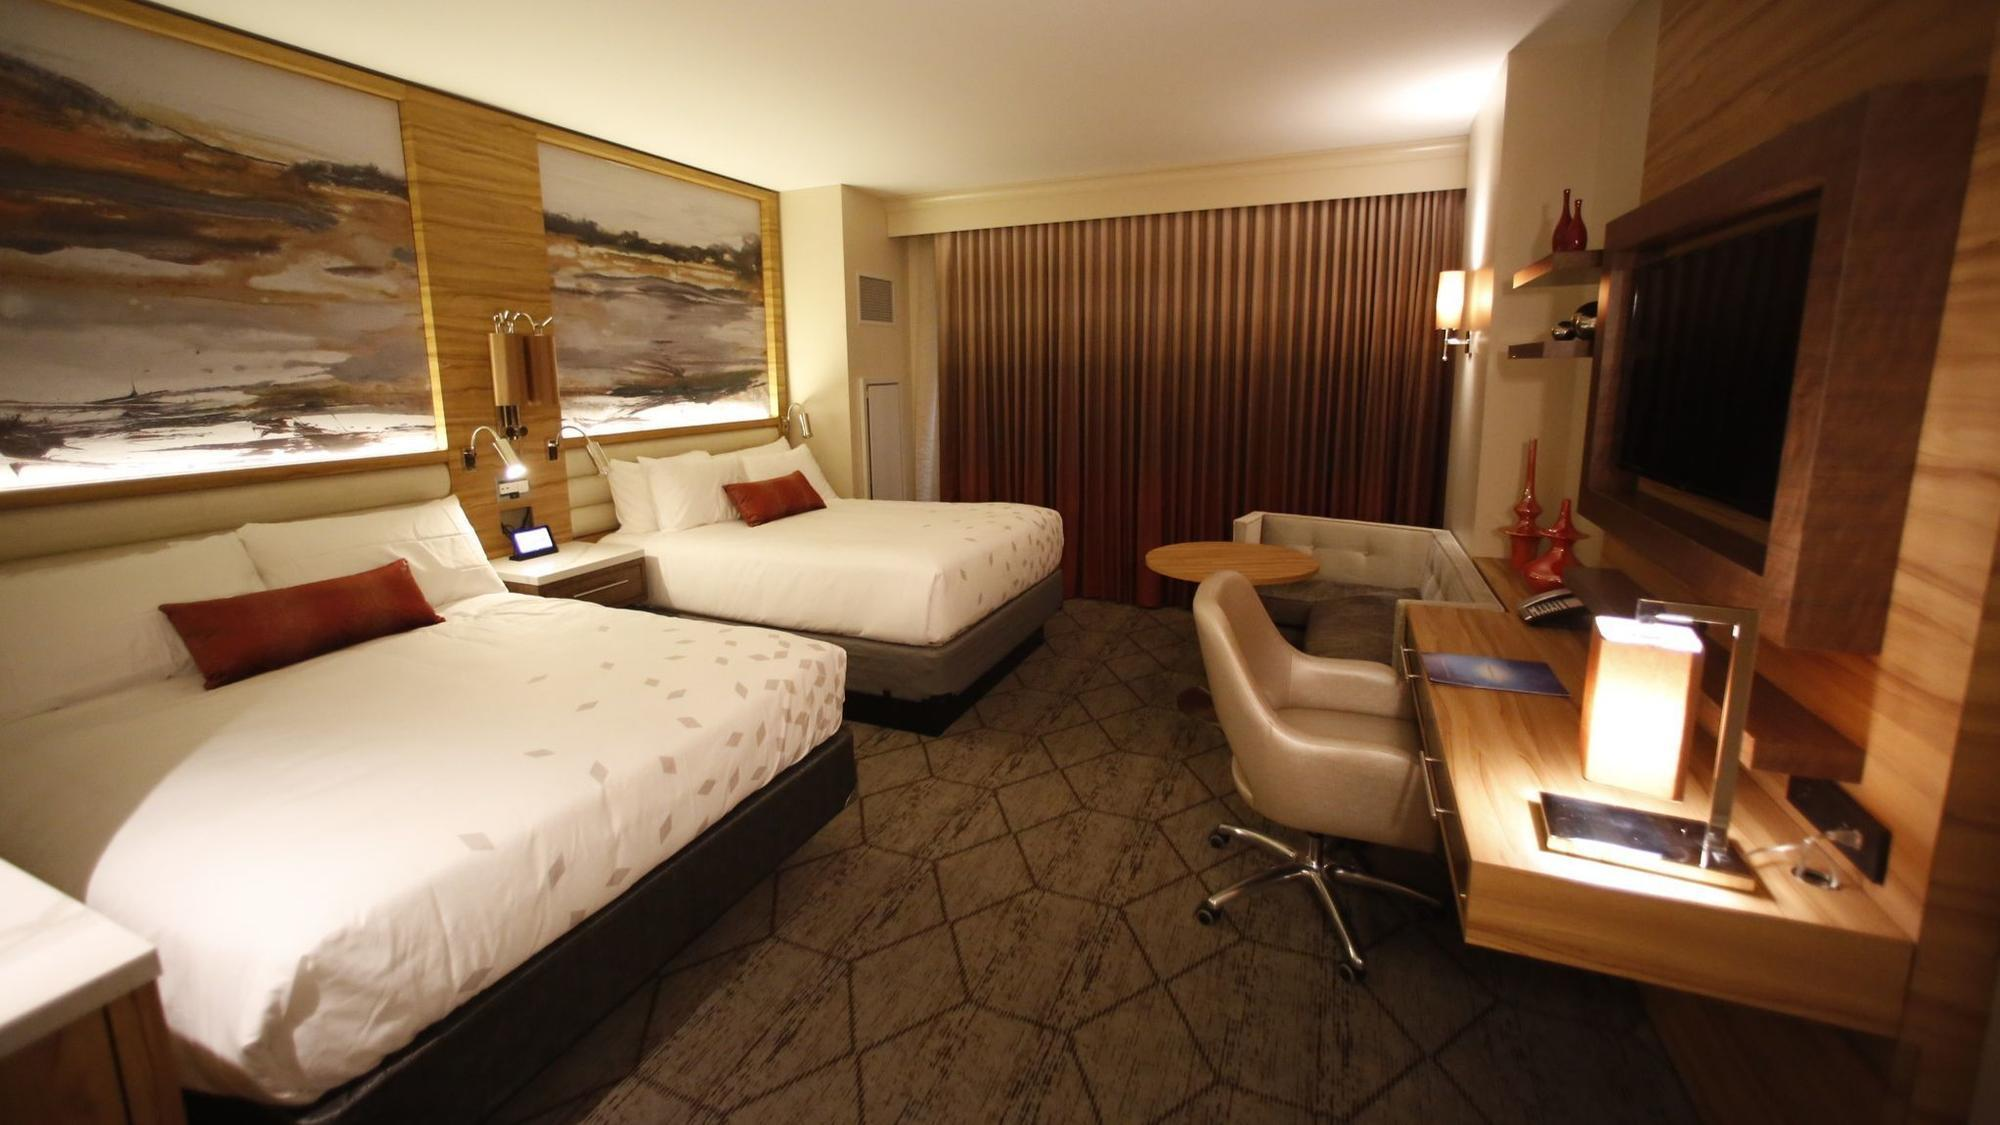 Here S A First Look At Sycuan S New Hotel The San Diego